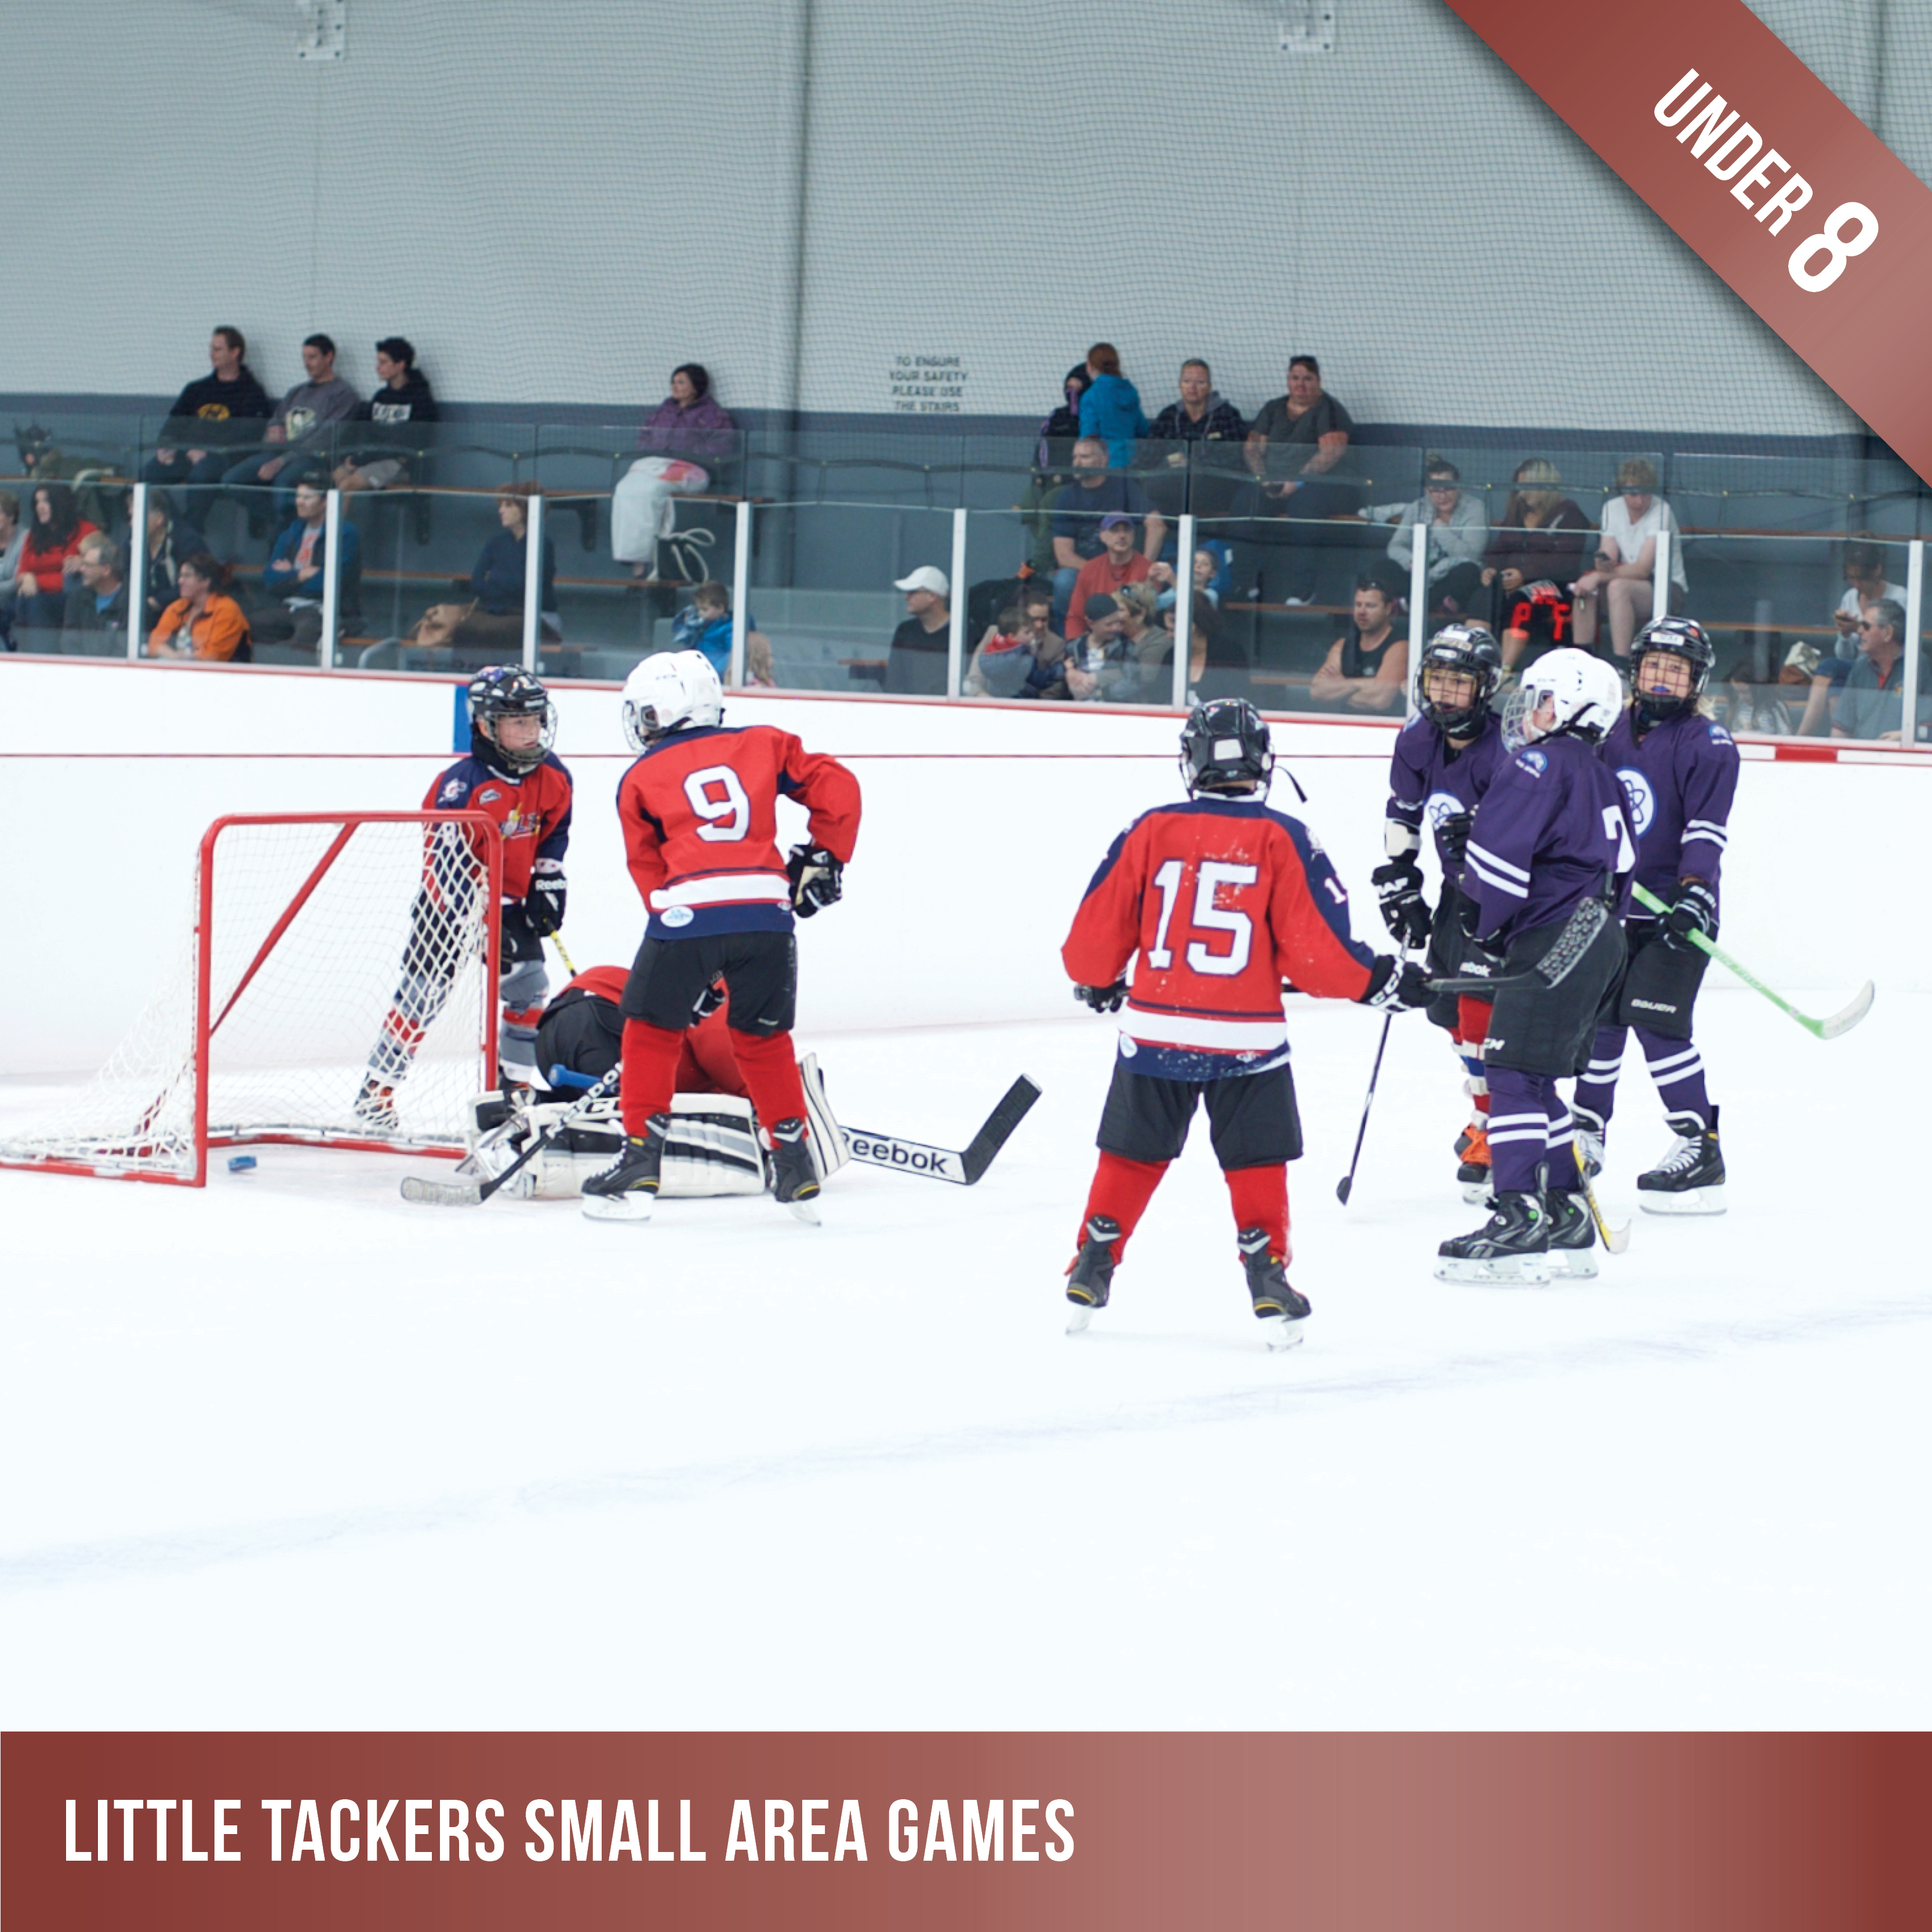 Little Tackers Small Area Games Under 8 Cockburn Ice Arena